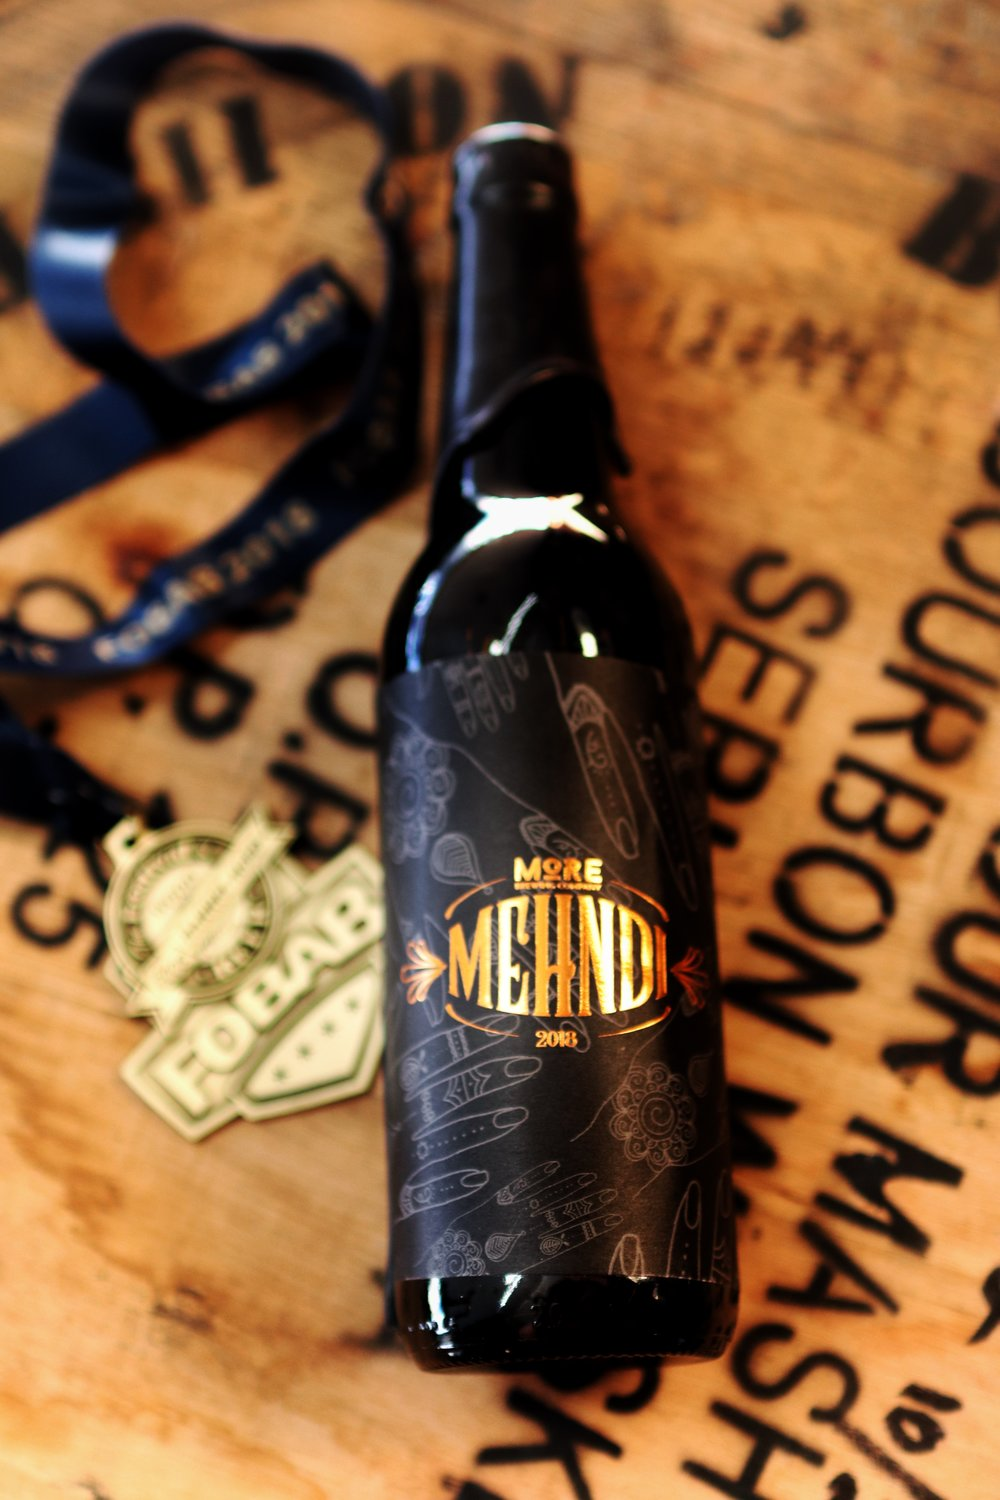 Mehndi (2018) - CLICK HERE TO ENTER THE LOTTERY FOR 2018 MEHNDIReleased: 11/23/201814.5% ABVBarrels: Four Roses, Old Weller Antique, Russell's ReserveRest Time: 15 monthsAccolades:- 2018 Festival of Wood & Barrel-Aged Beer (FoBAB) - Gold Medal - Strong Porter/StoutMehndi 2018 is our expression of nuance. We took a robust imperial stout and aged it in a blend of hand-selected bourbon barrels that we sourced from Warehouse Liquors in Chicago, IL. We let the beer age for 15 months, in a mildly temperature controlled environment. Doing this, let the barrels come to life and breathe with the changing seasons and temperatures. The resulting beer, is a true expression of our craft. Flavors of dark fudge, intermingle with notes of vanilla, and subtle, savory smokiness from the charred oak it rested in.Mehndi exemplifies what patience can achieve. We will release Mehndi once a year and plan to release a